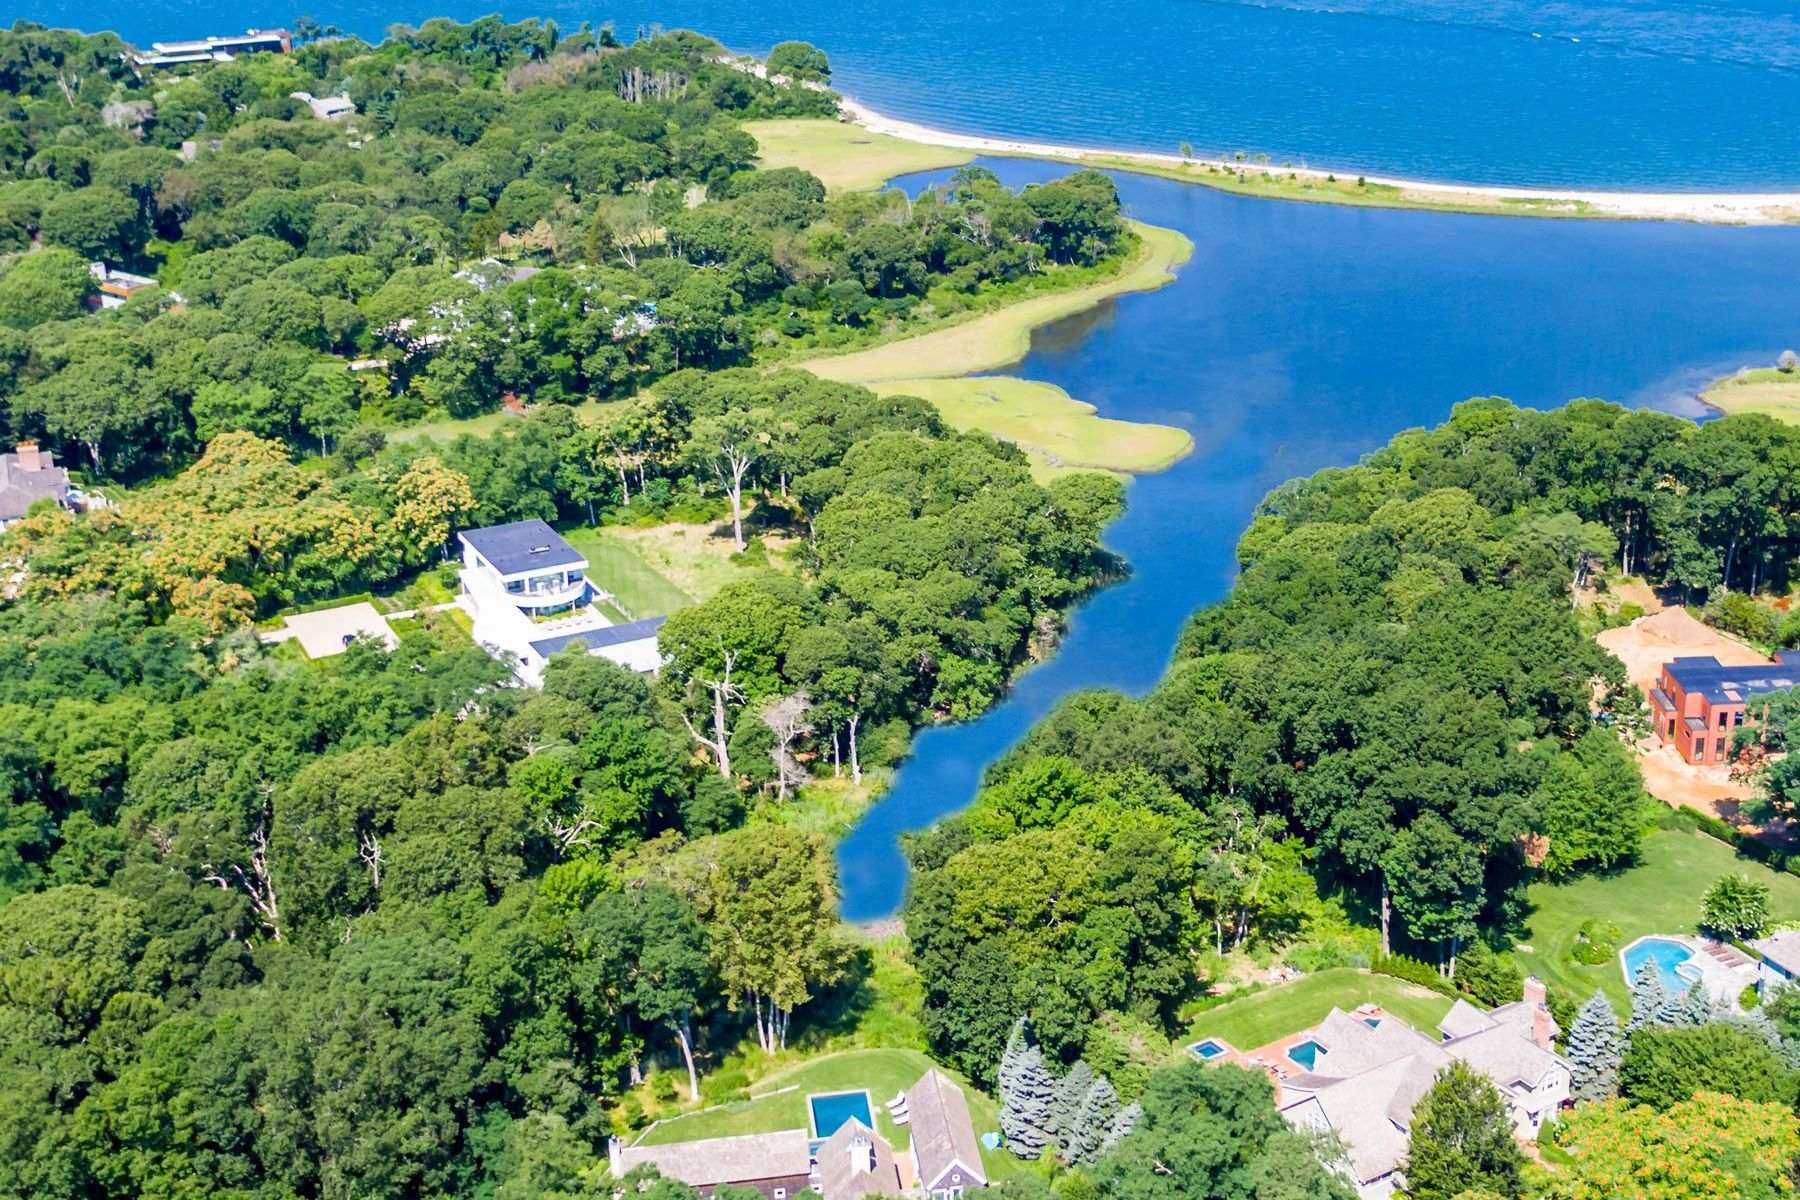 Single Family Homes for Sale at WATERFRONT COMPOUND WITH TWO HOMES 11 & 15 Ezekills Hollow Sag Harbor, New York 11963 United States